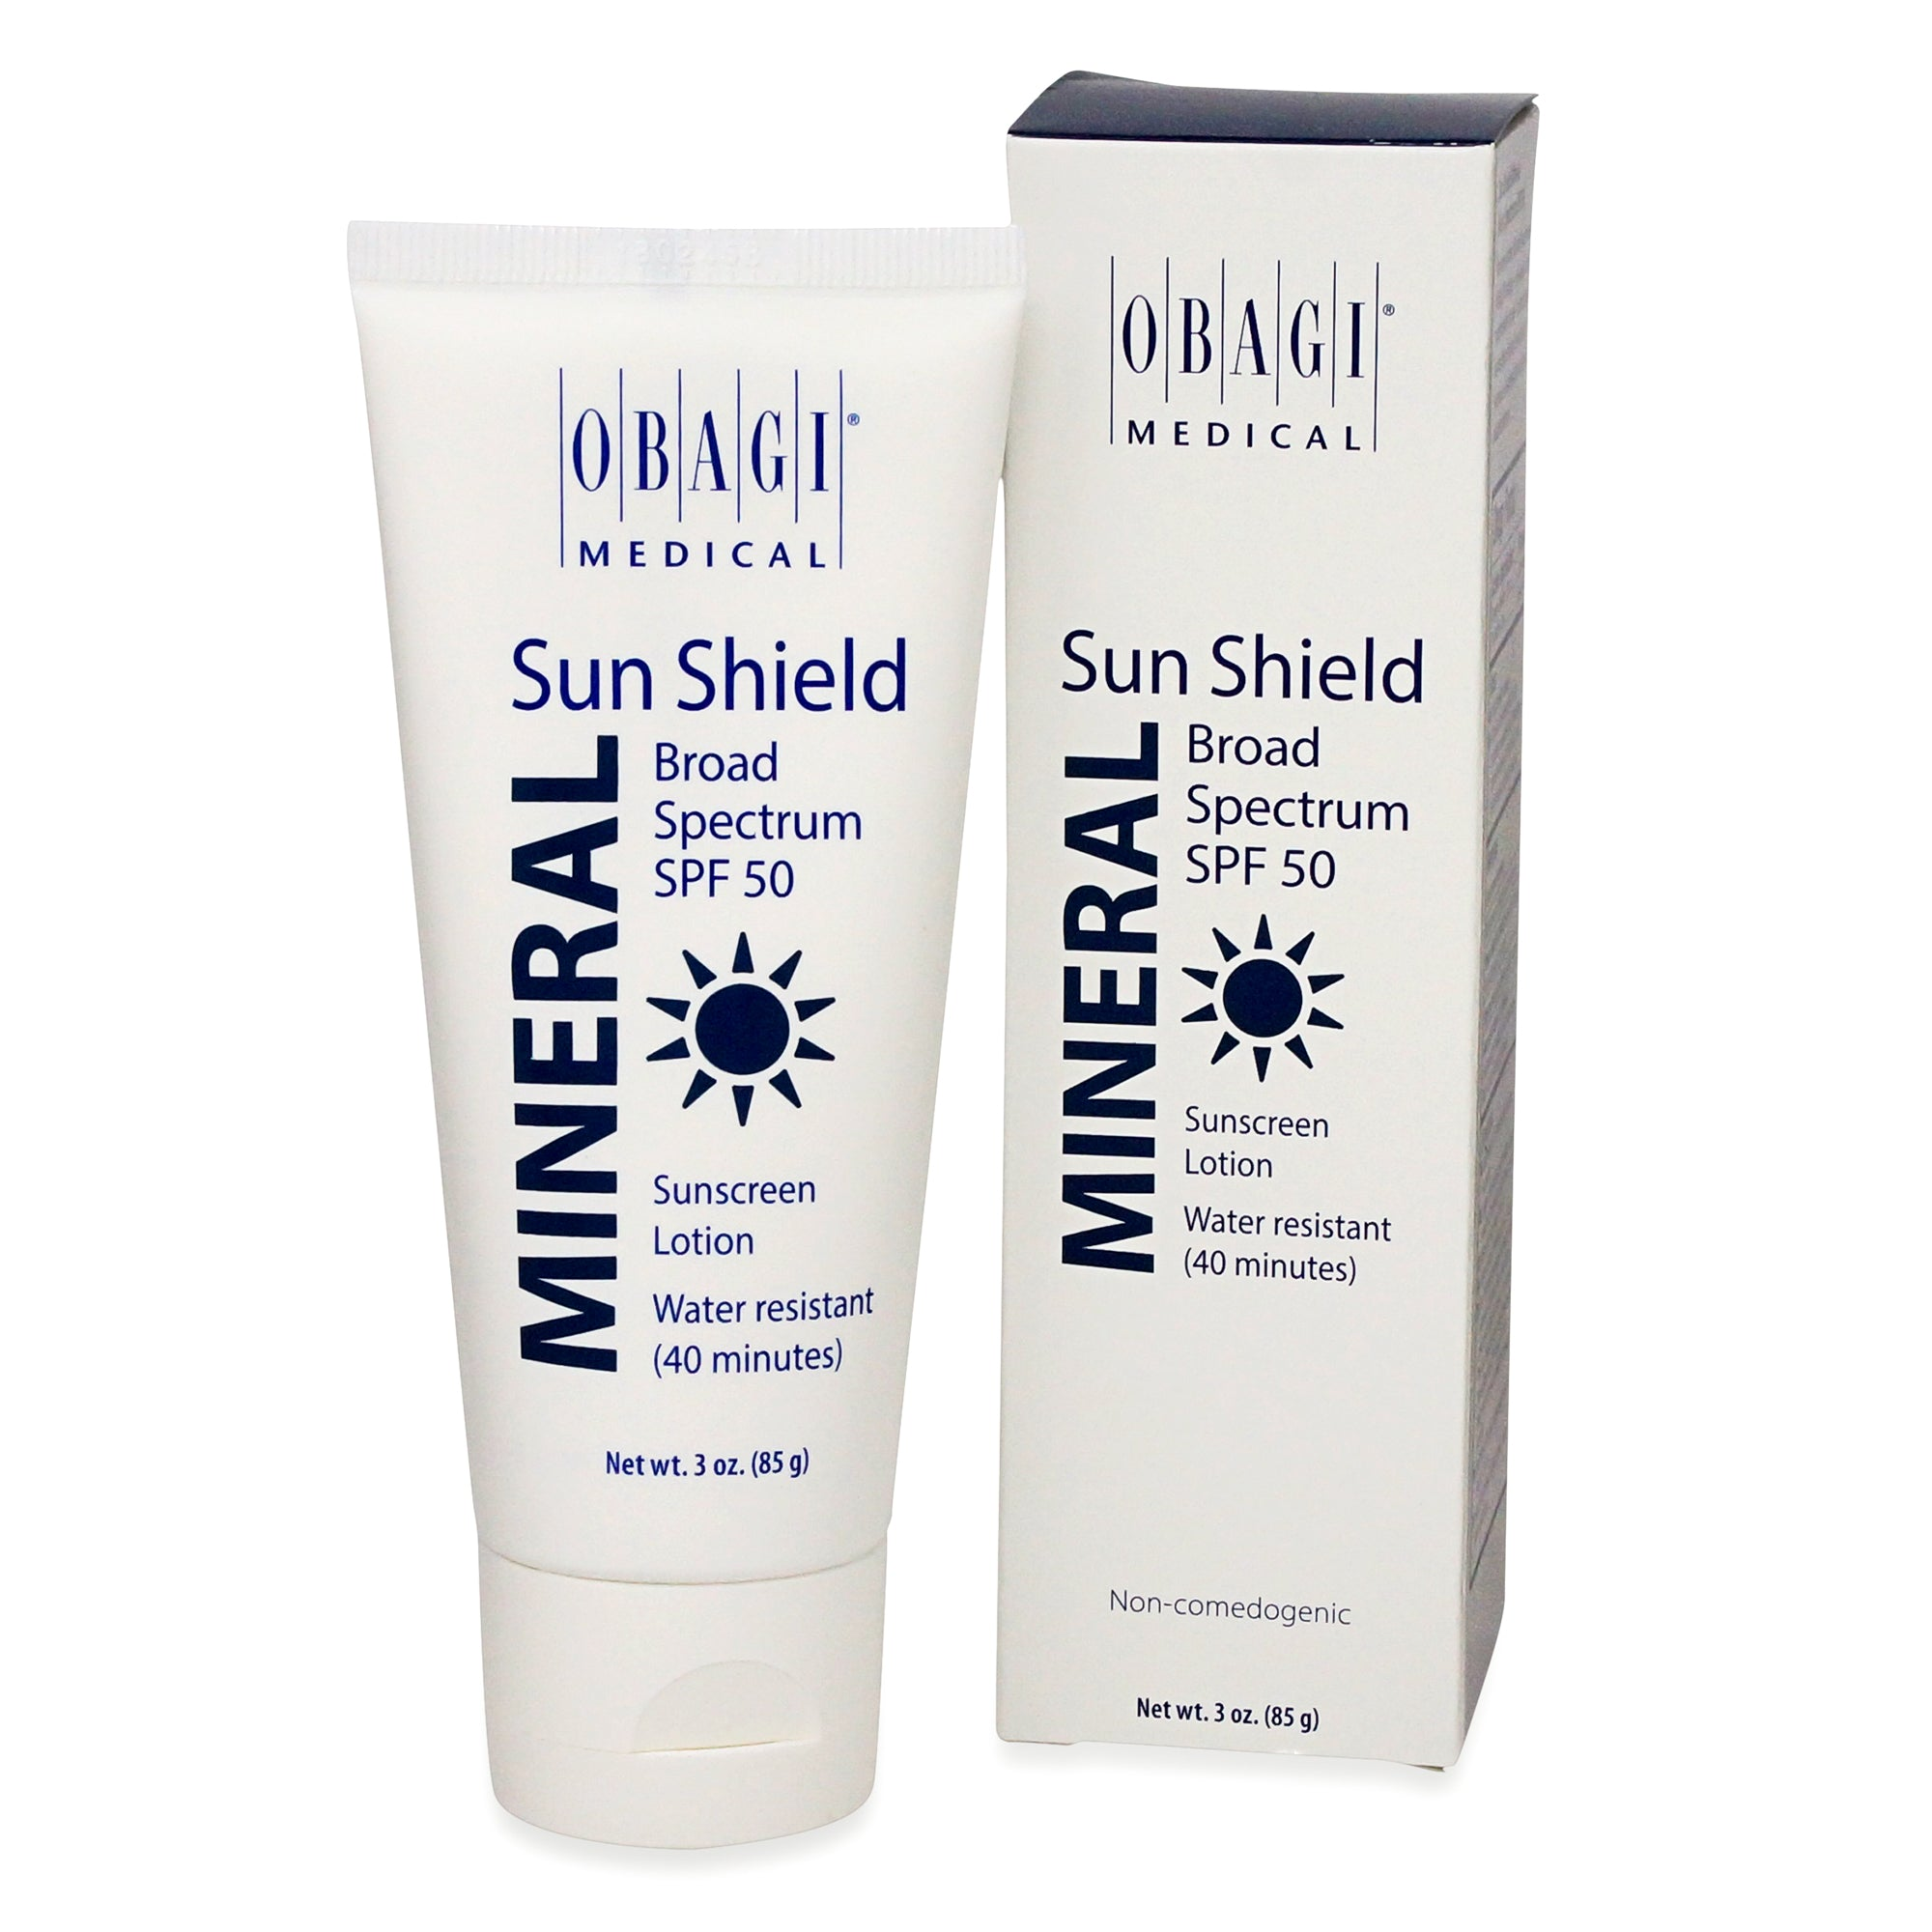 OBAGI ~ SUN SHIELD ~ MINERAL BROAD SPECTRUM SPF50 SUNCREEN LOTION WATER RESISTANT~ 3OZ (85G)